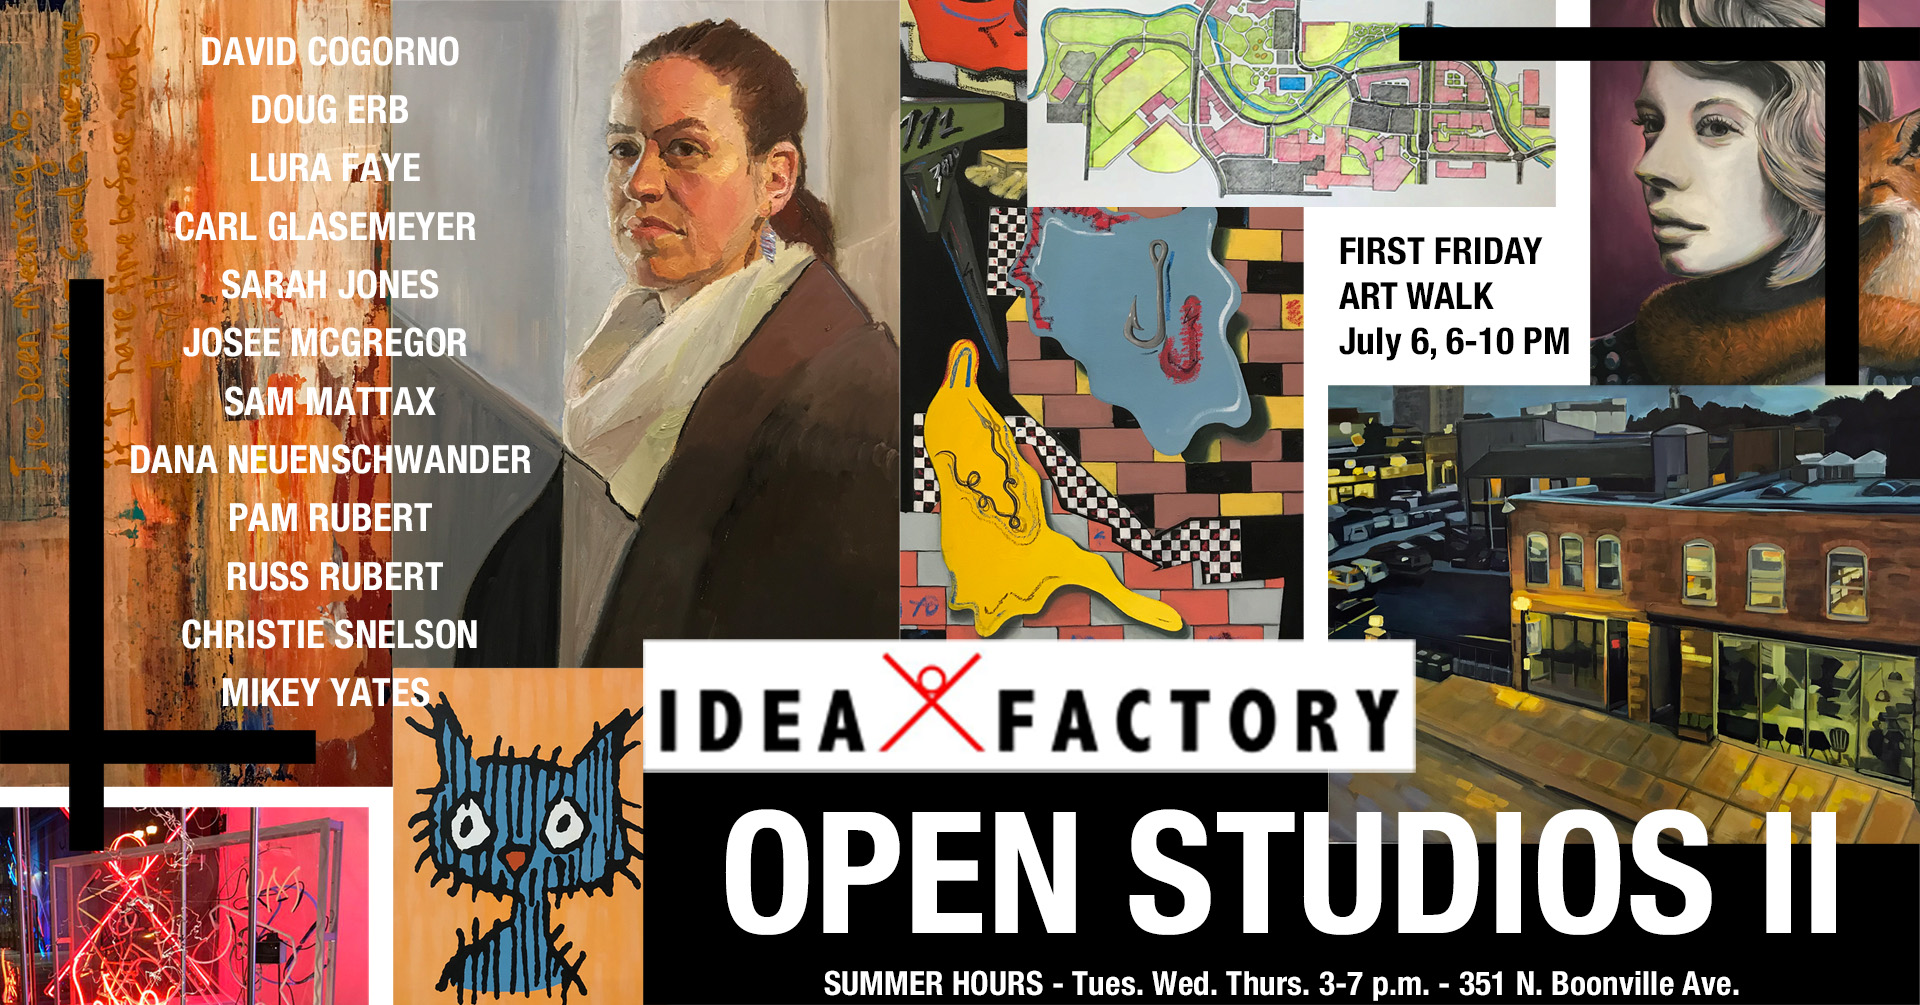 Open Studios II reception on First Friday, July 6